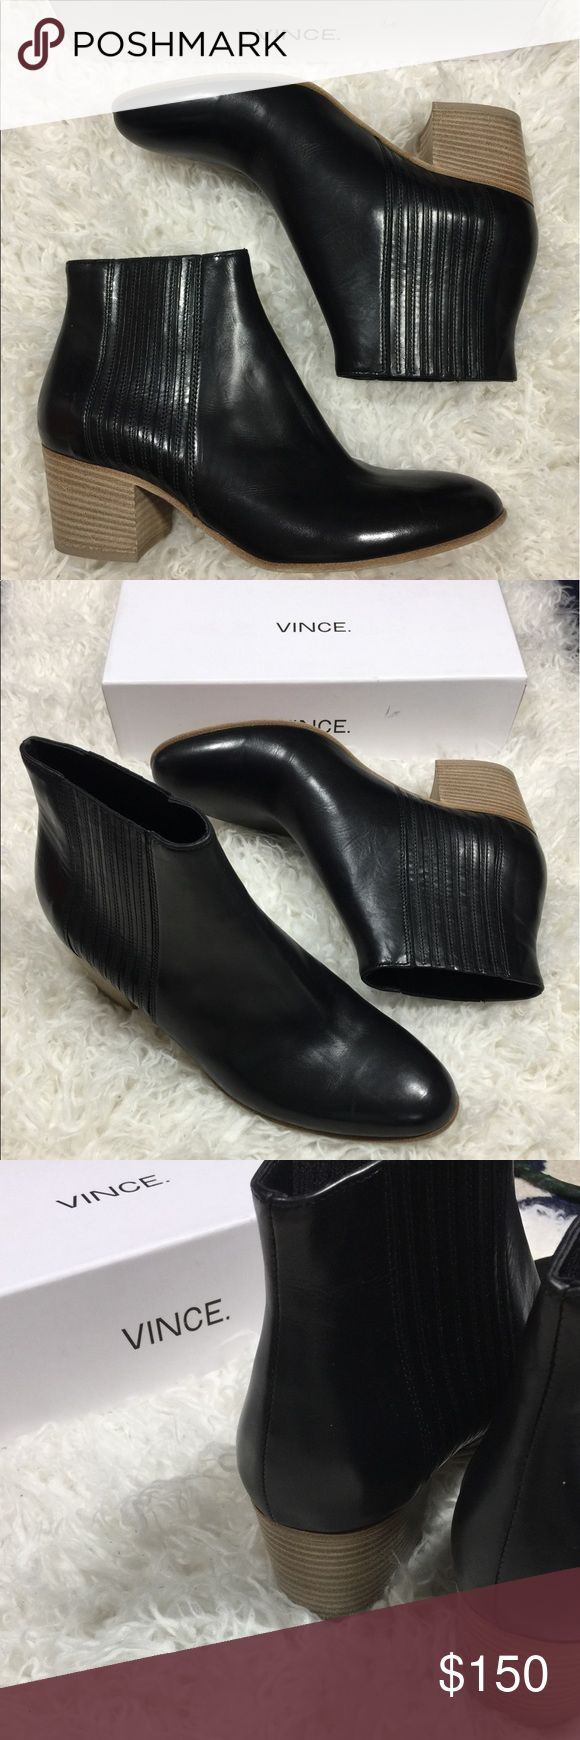 Vince Haider leather black ankle booties Brand new with box! Black leather Haider Vince ankle moto booties! With tan stacked heels! Size 8.5 Vince Shoes Combat & Moto Boots